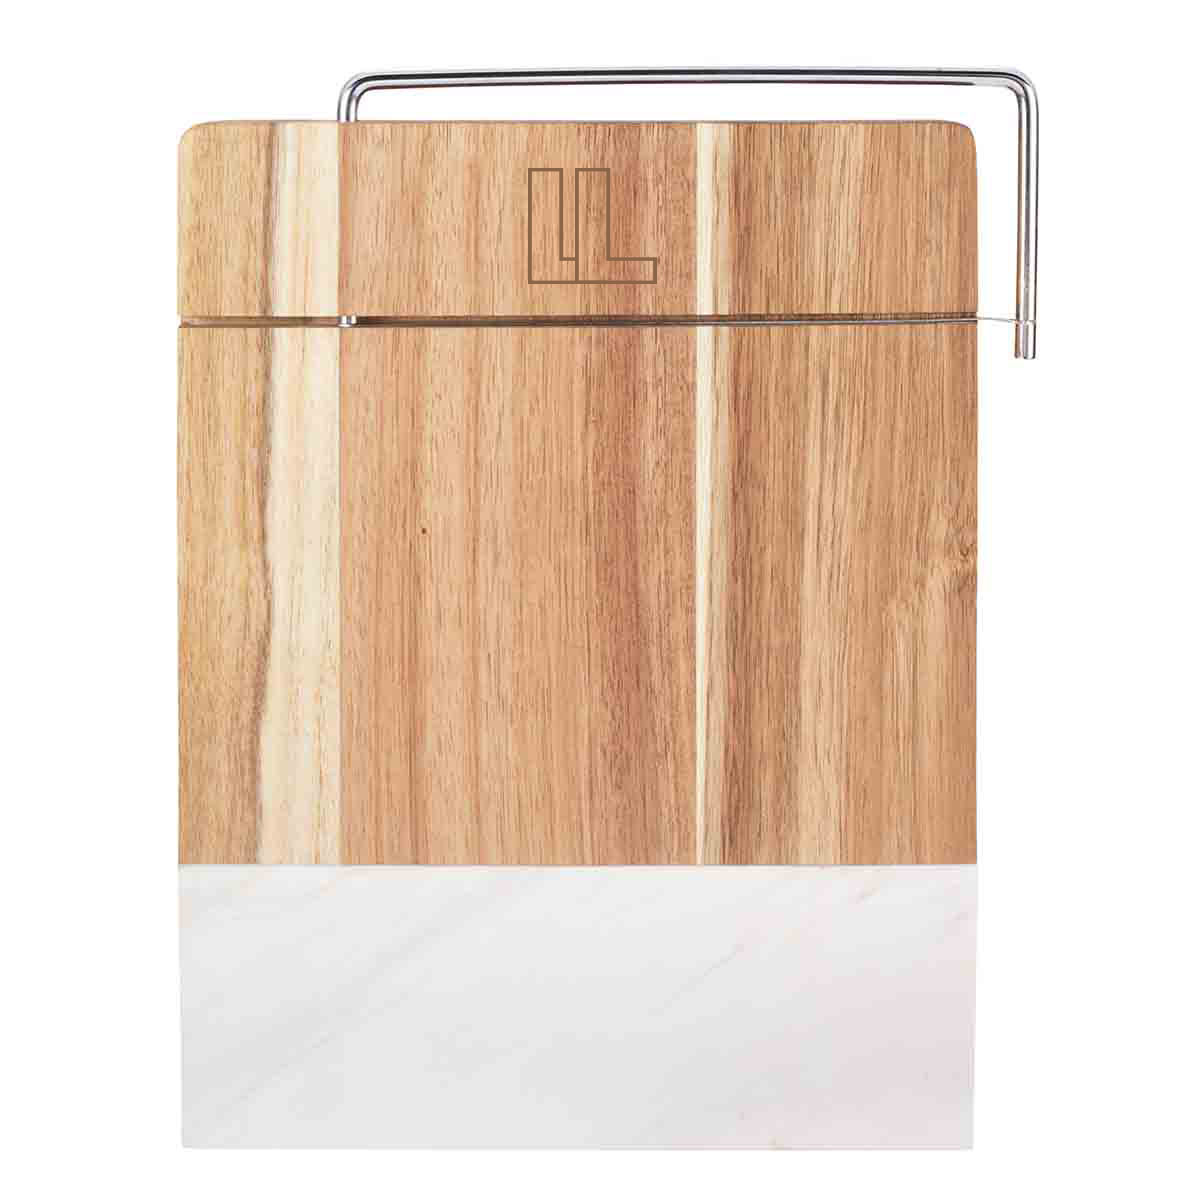 148063 marble wood cutting board laser engraved one location